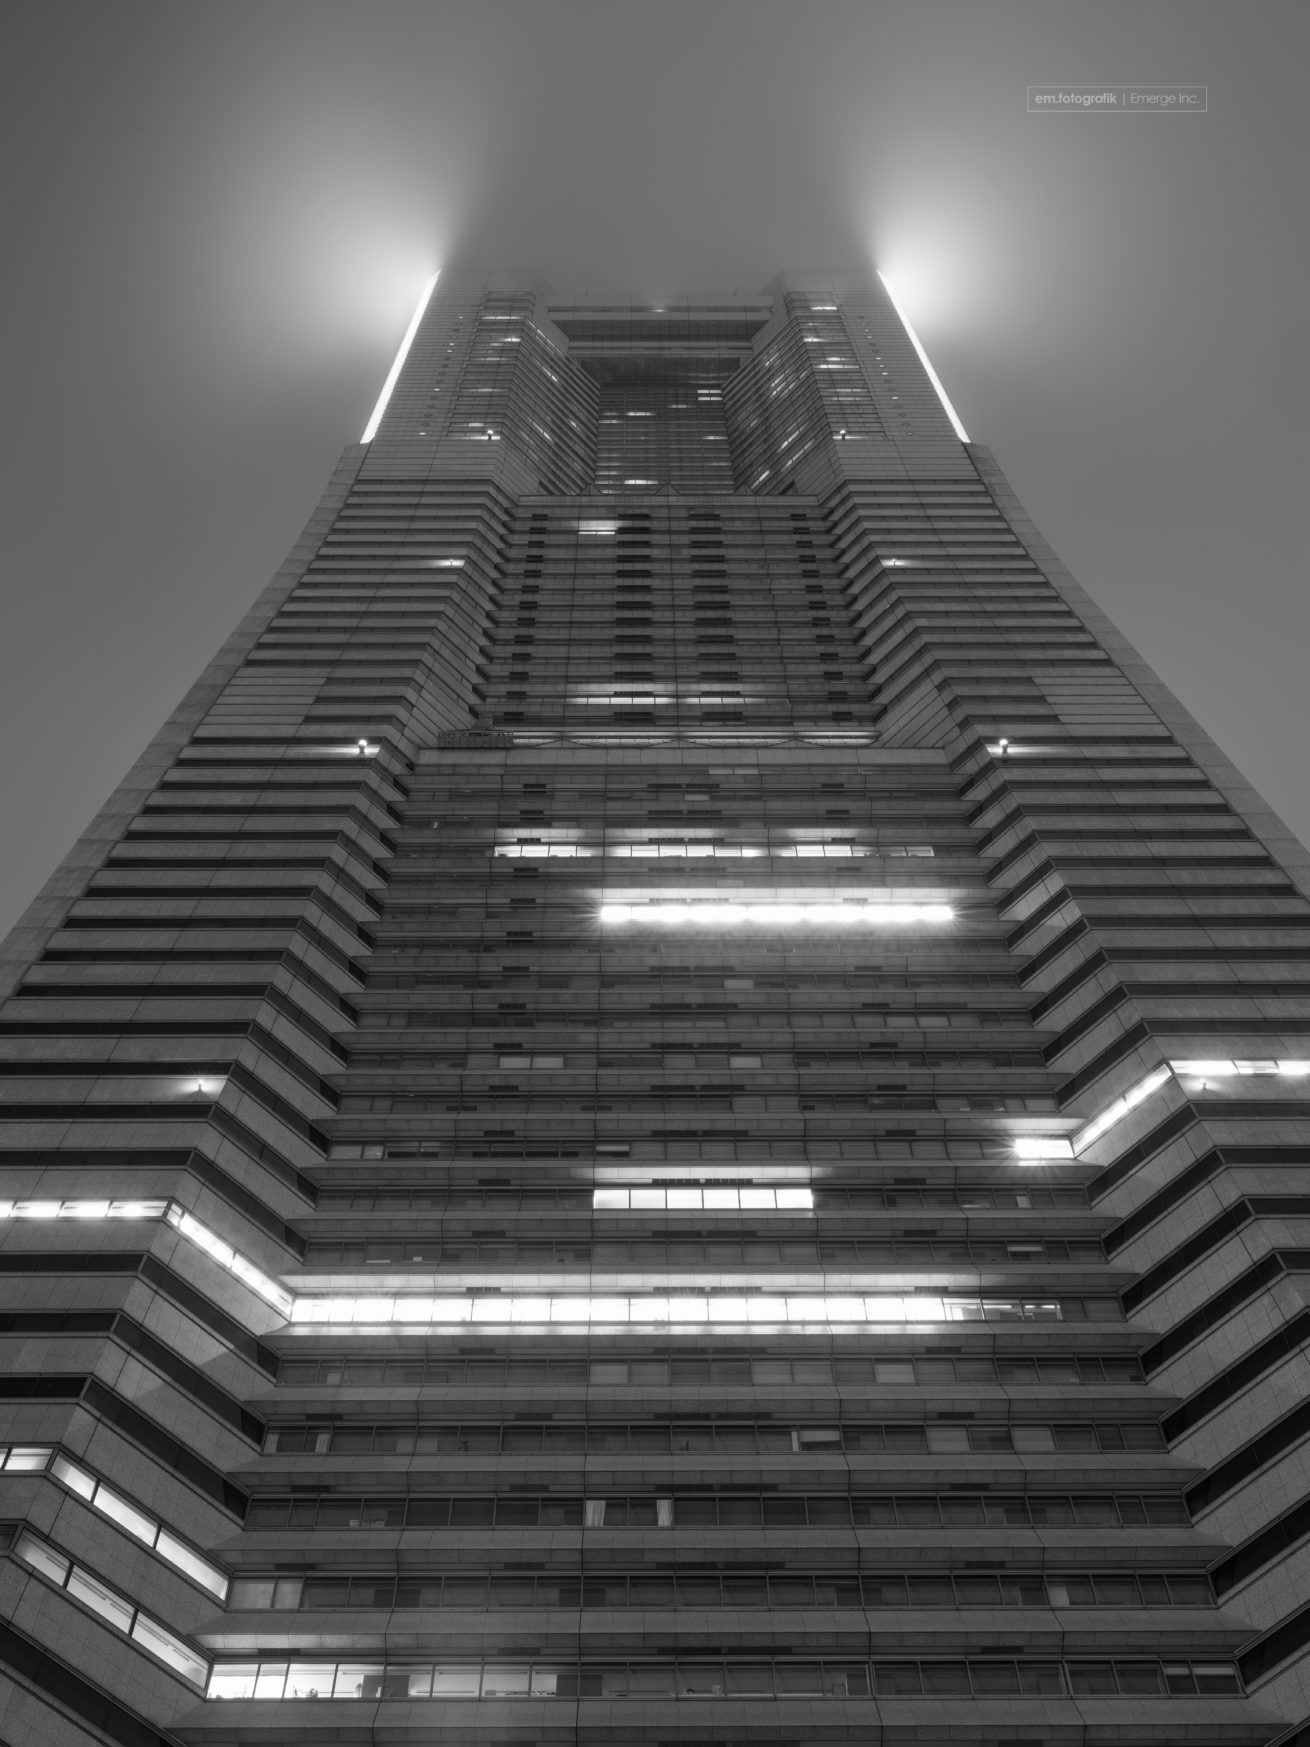 _EM94861-Edit-Landmark-Tower-BW-WM-FULL